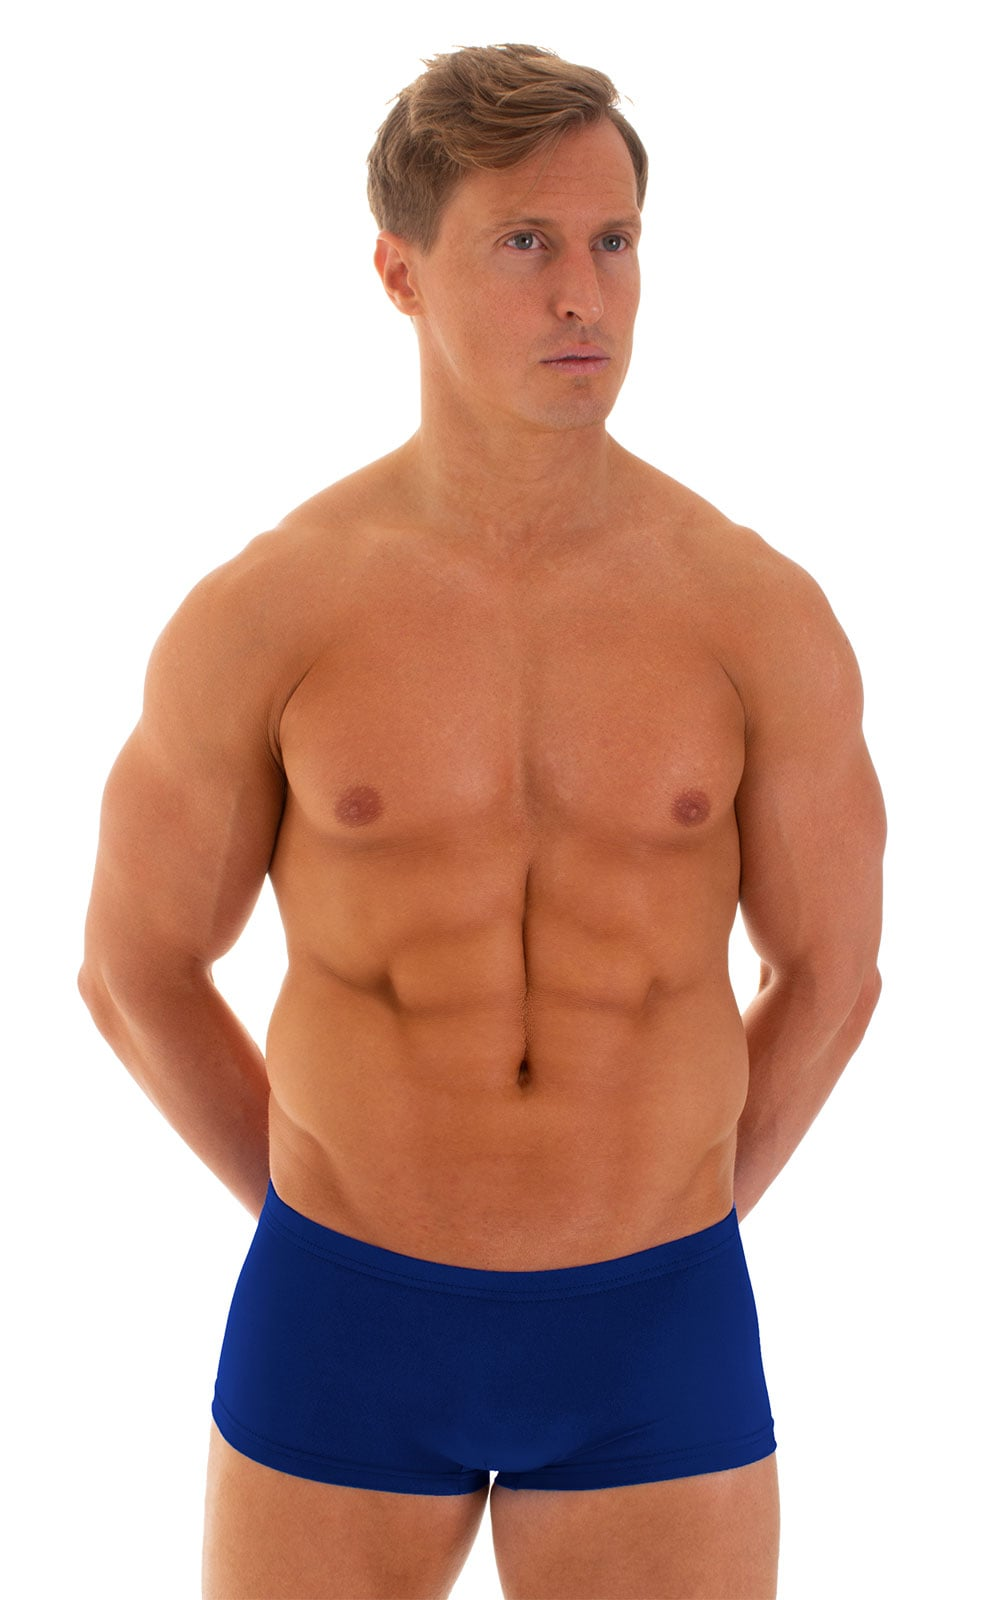 Extreme Low Square Cut Swim Trunks in Semi Sheer ThinSKINZ Royal Blue 1